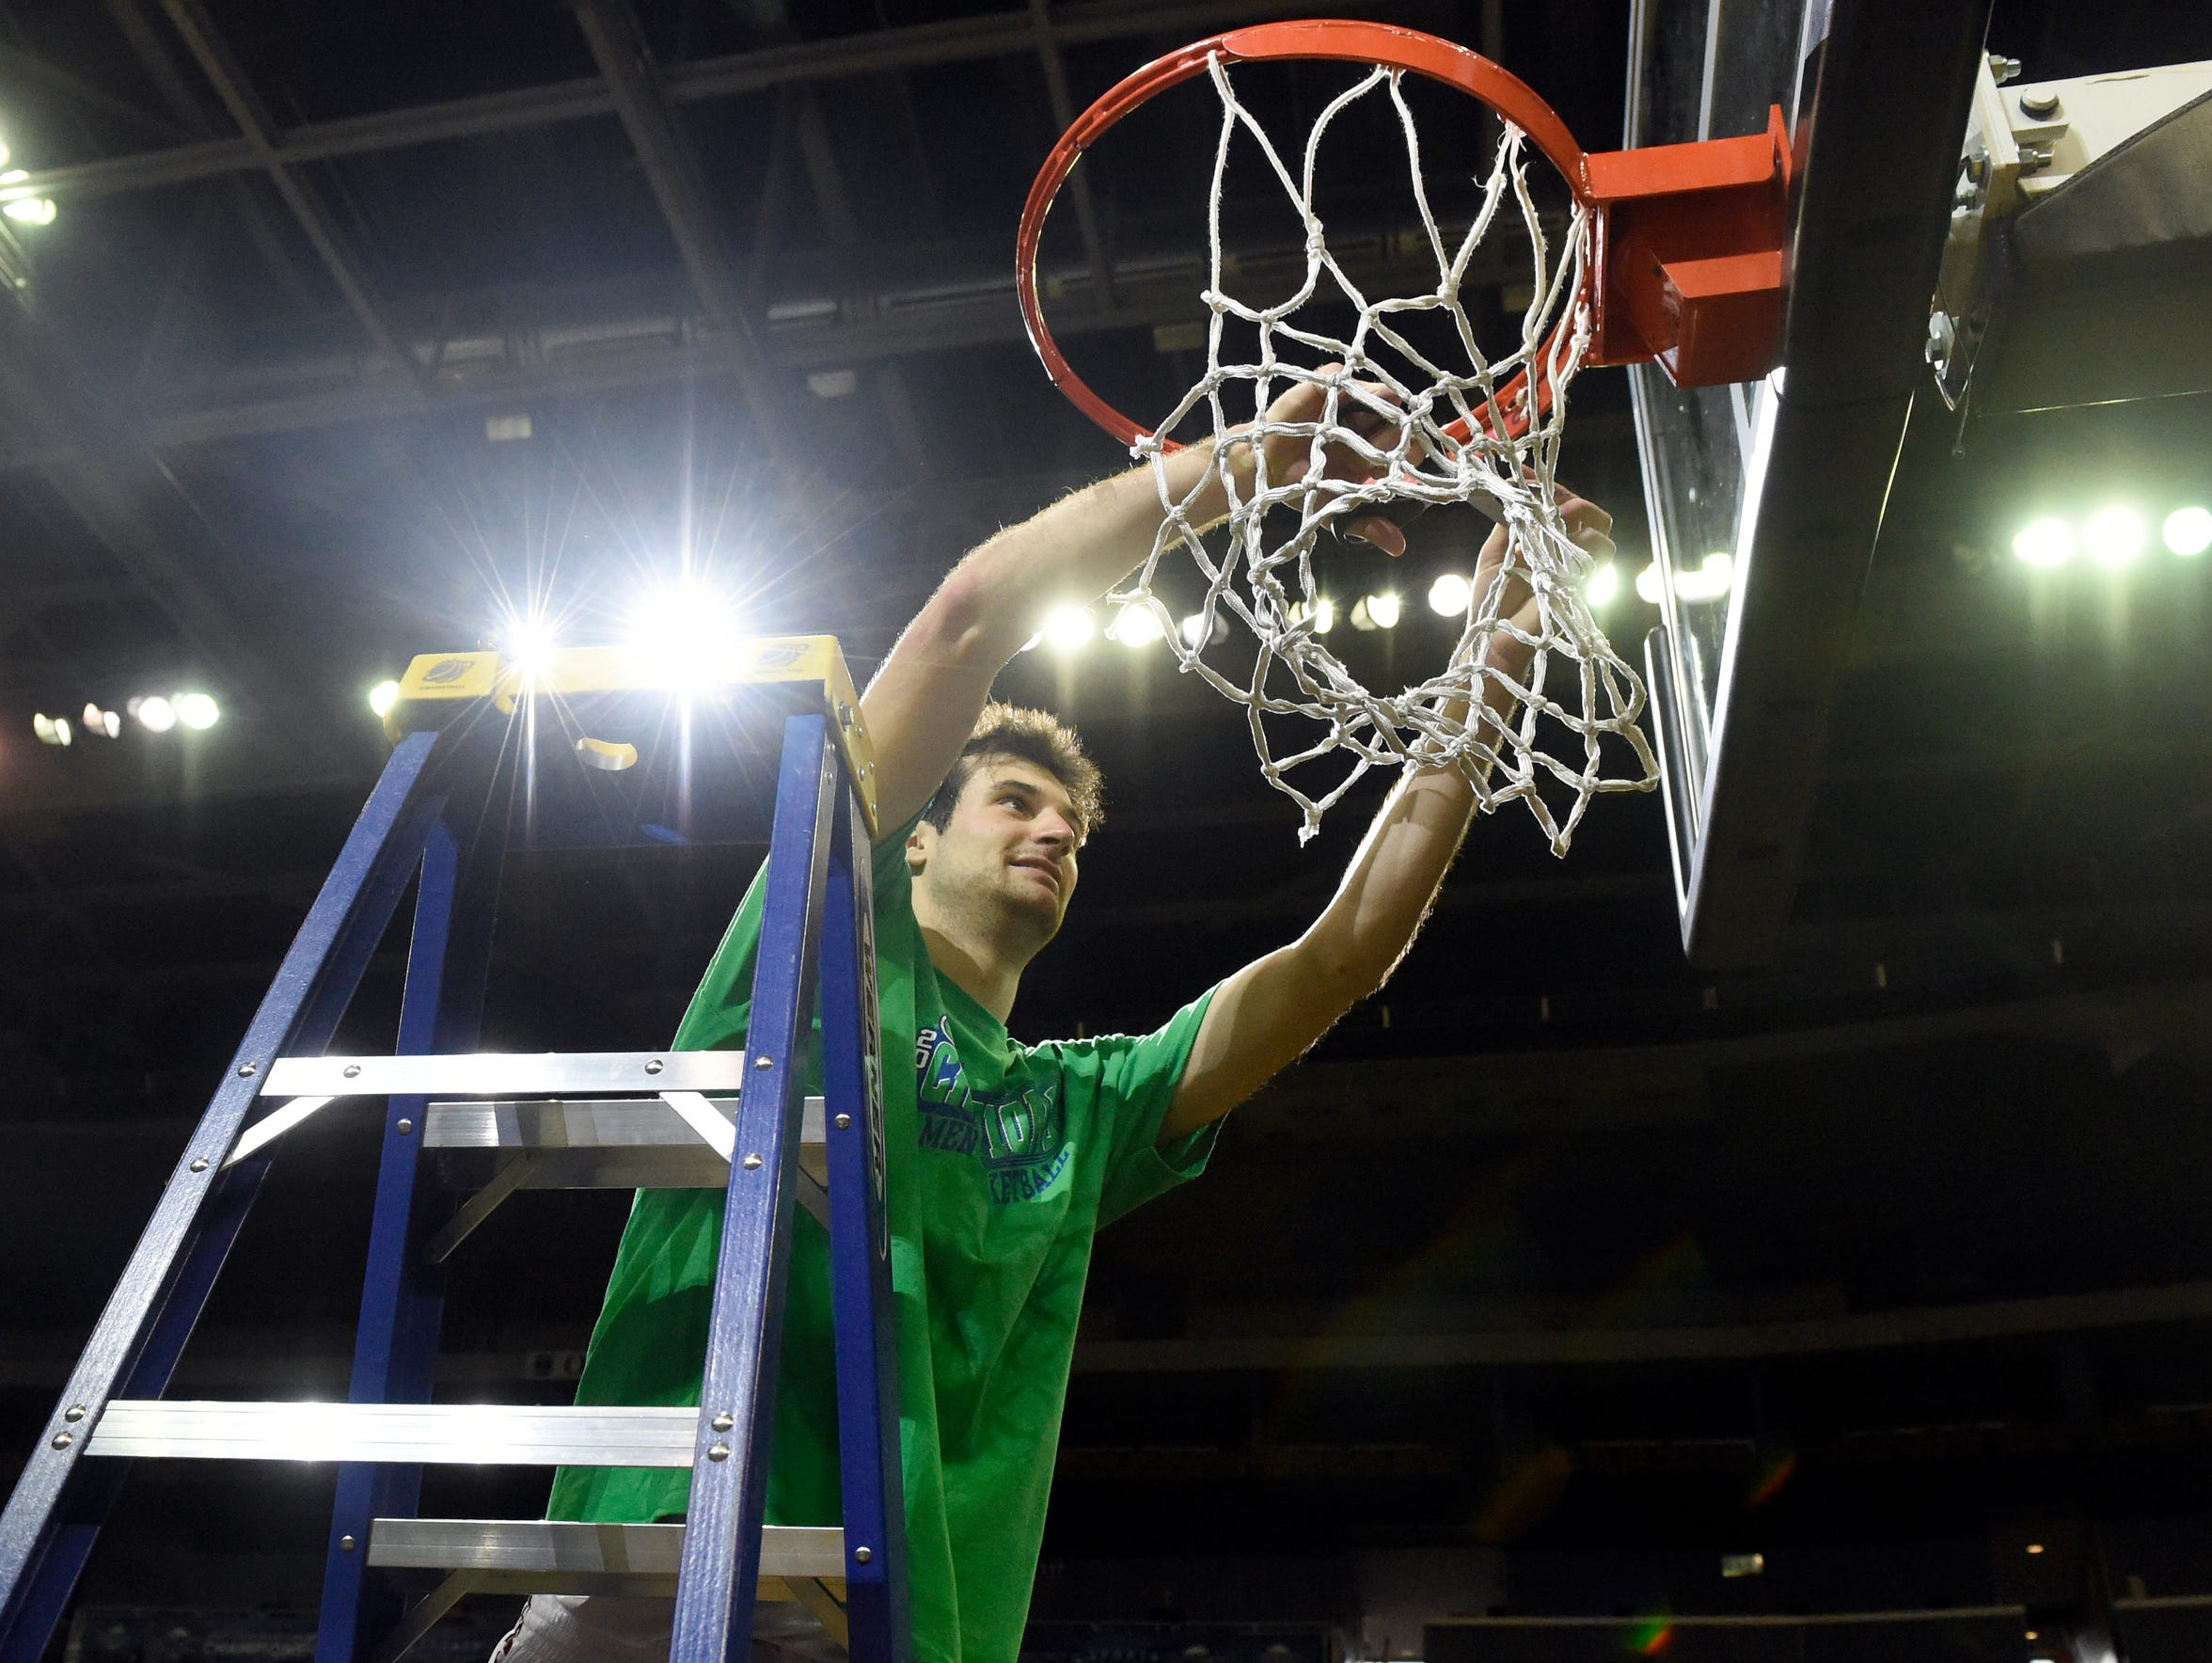 Adam Eberhard of Bellarmine cuts down a portion of the net after helping his team win the Great Lakes Valley Conference championship in Evansville in 2017.